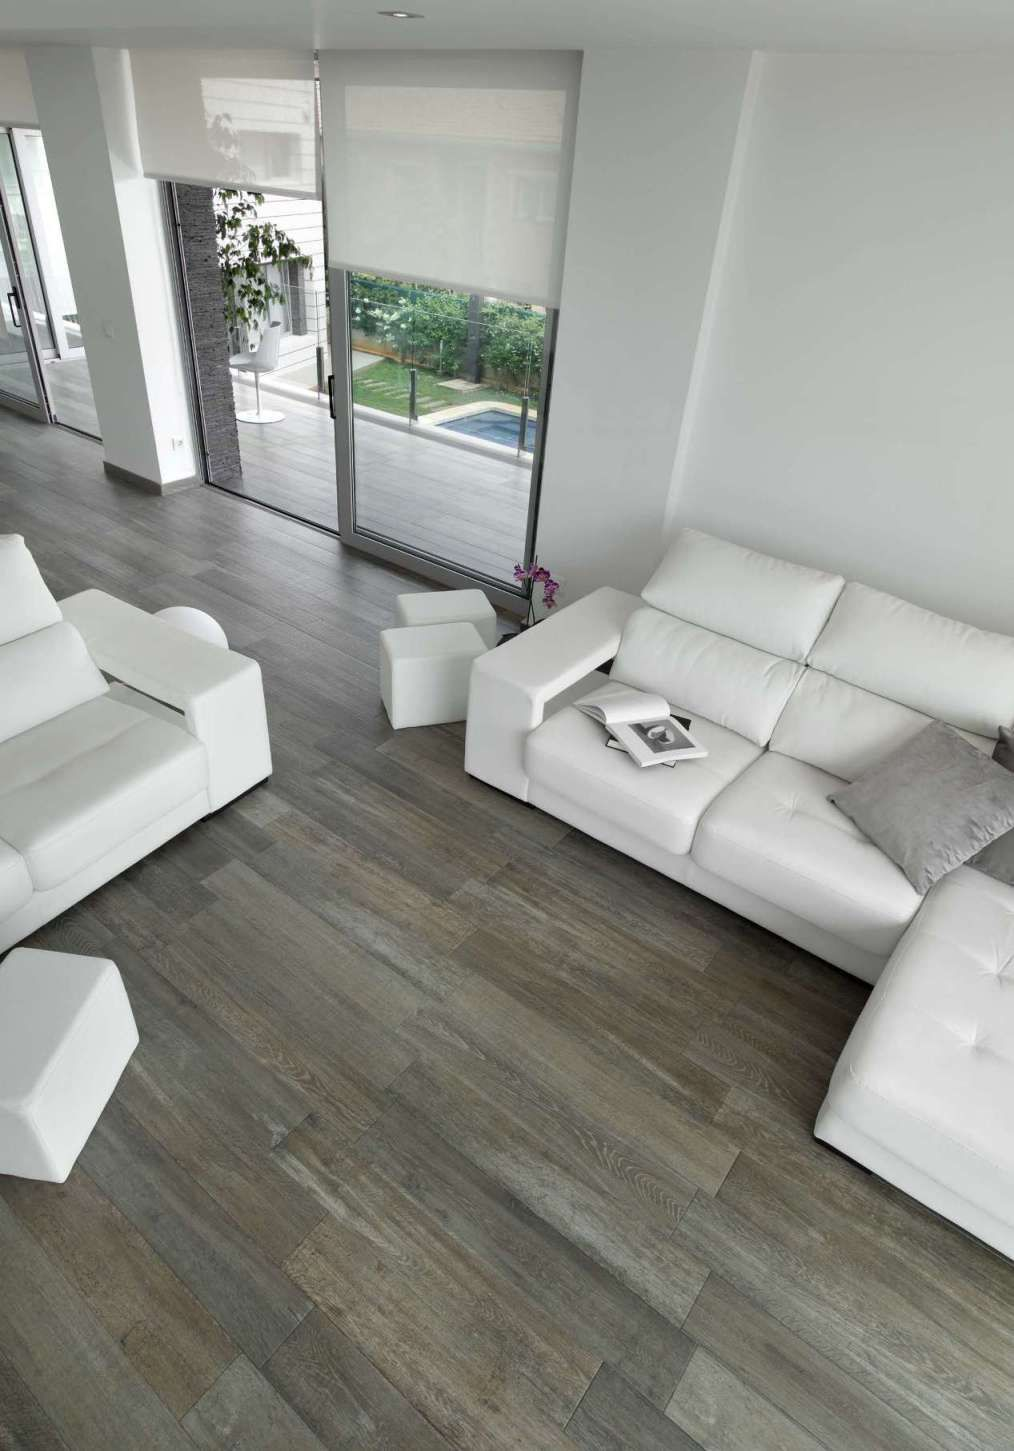 timber tiles wood look floor tiles sydney 2a | chester street